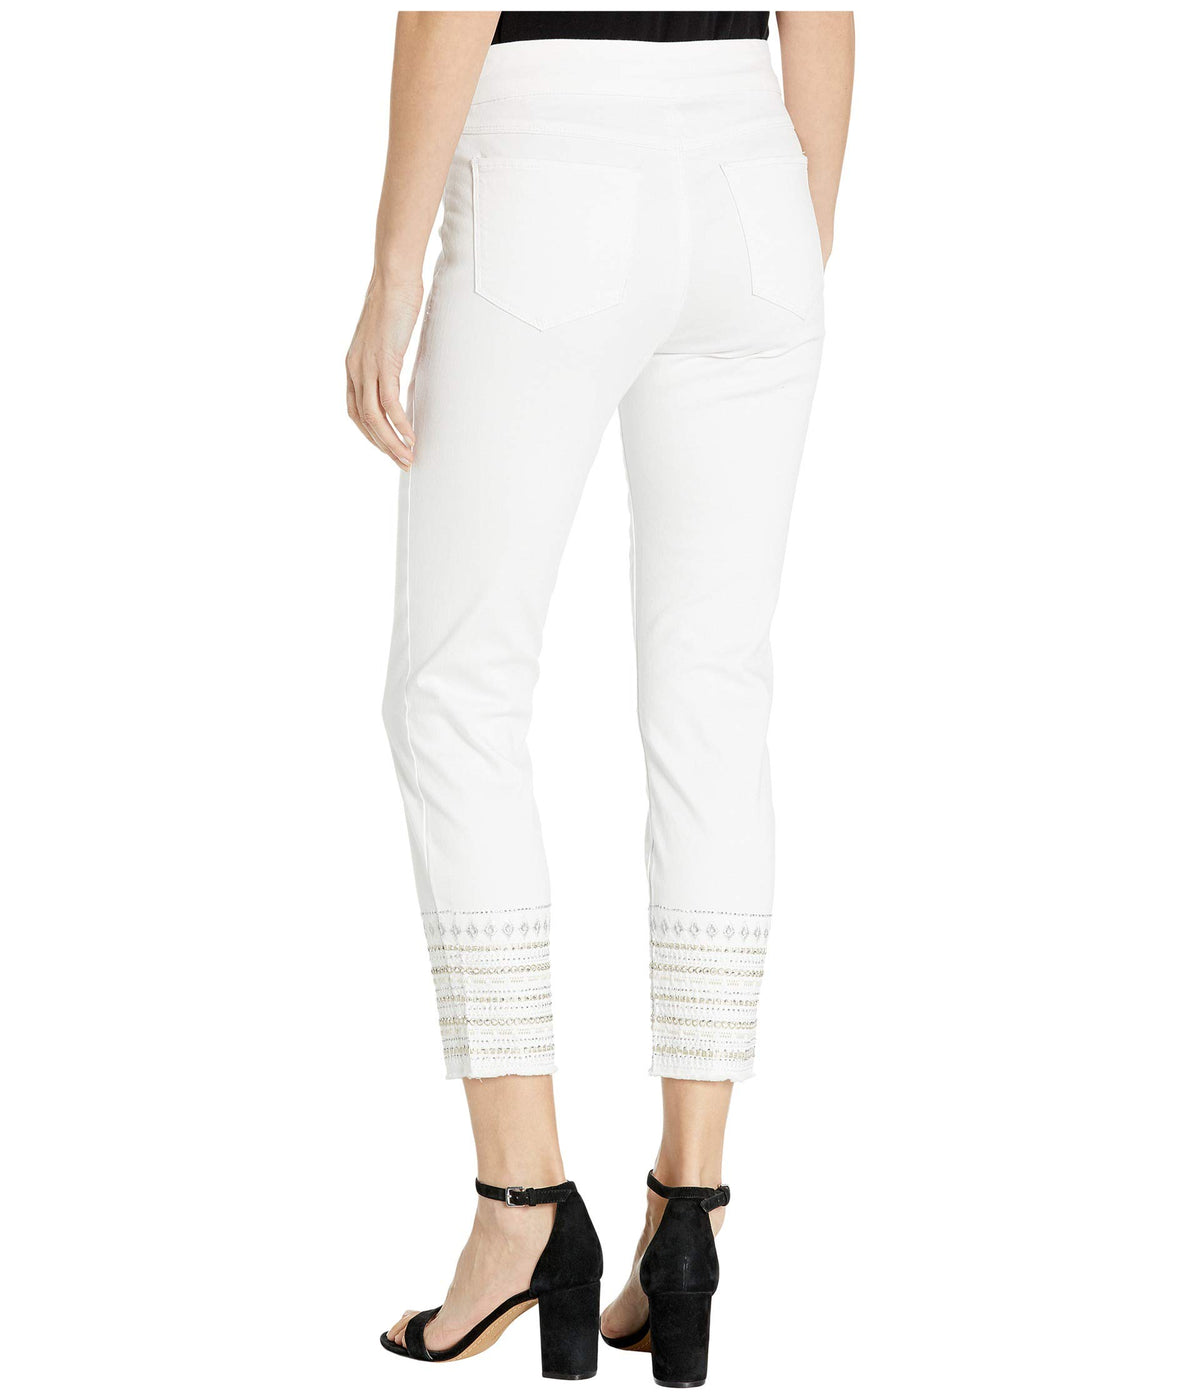 Pull-On Ankle Jeggings w/ Embroidery at Hem in White